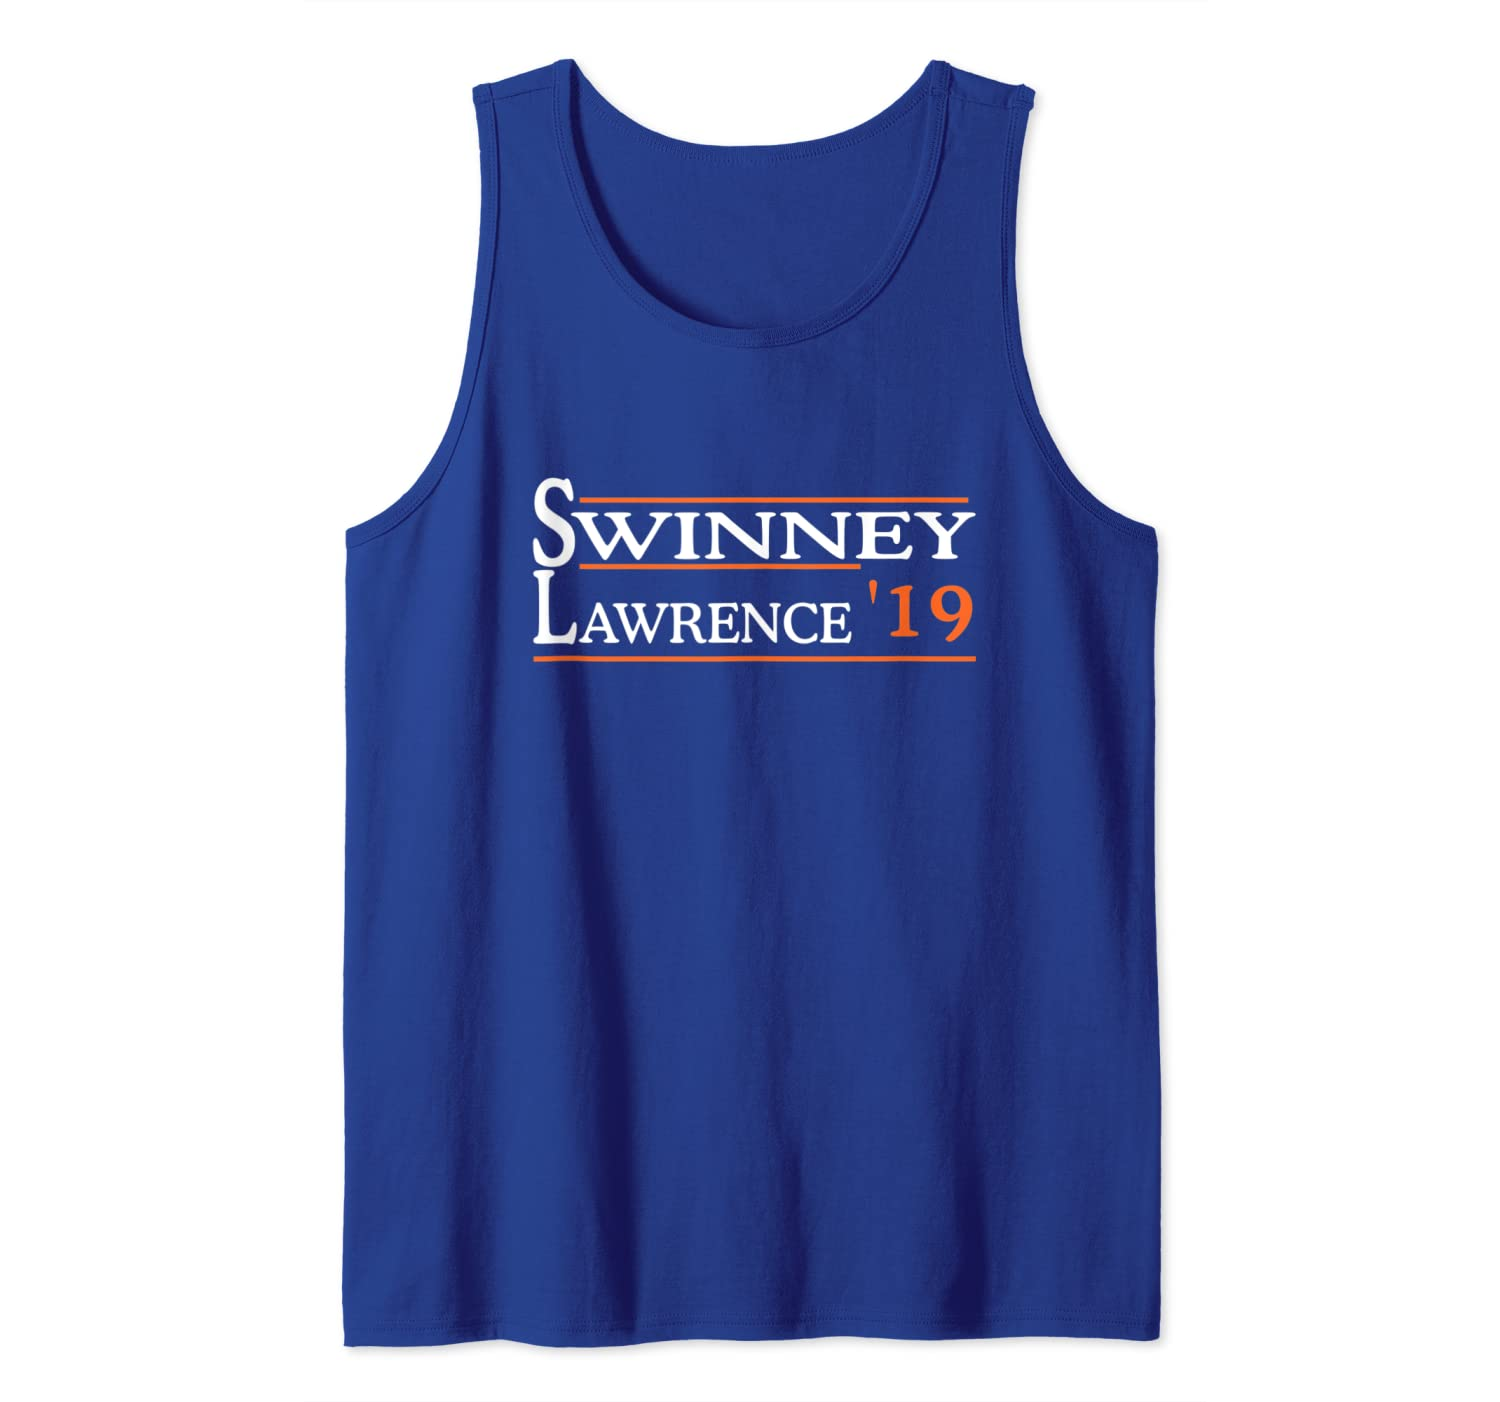 save off 17998 4ff43 Amazon.com: Swinney Lawrence 2019 Clemson SC Shirts Men ...